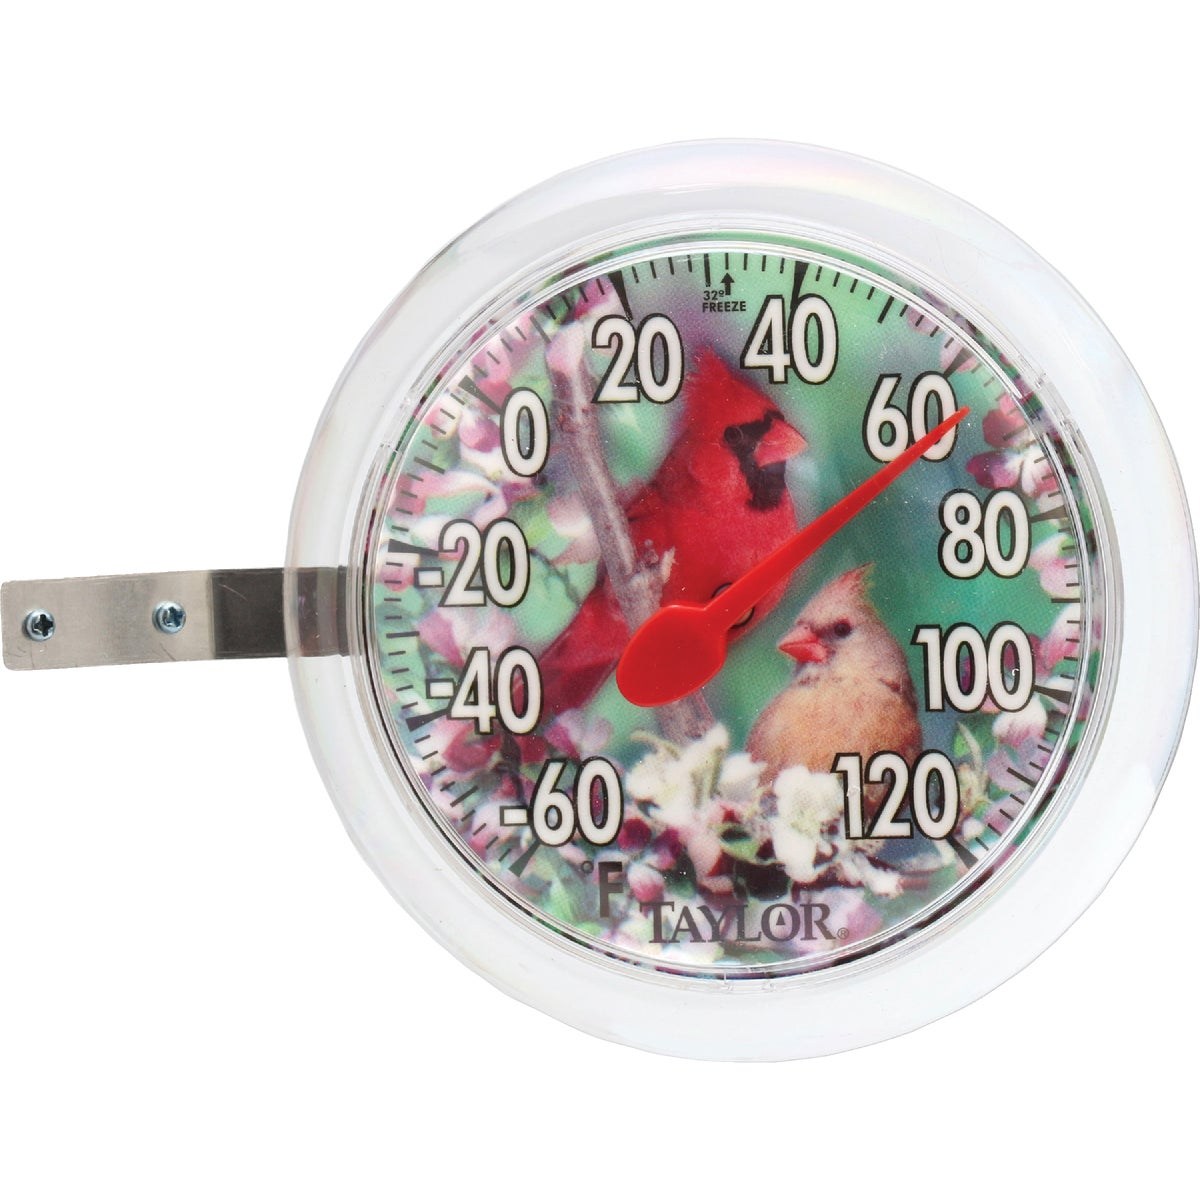 OUTDOOR THERMOMETER - 5632 by Taylor Precision